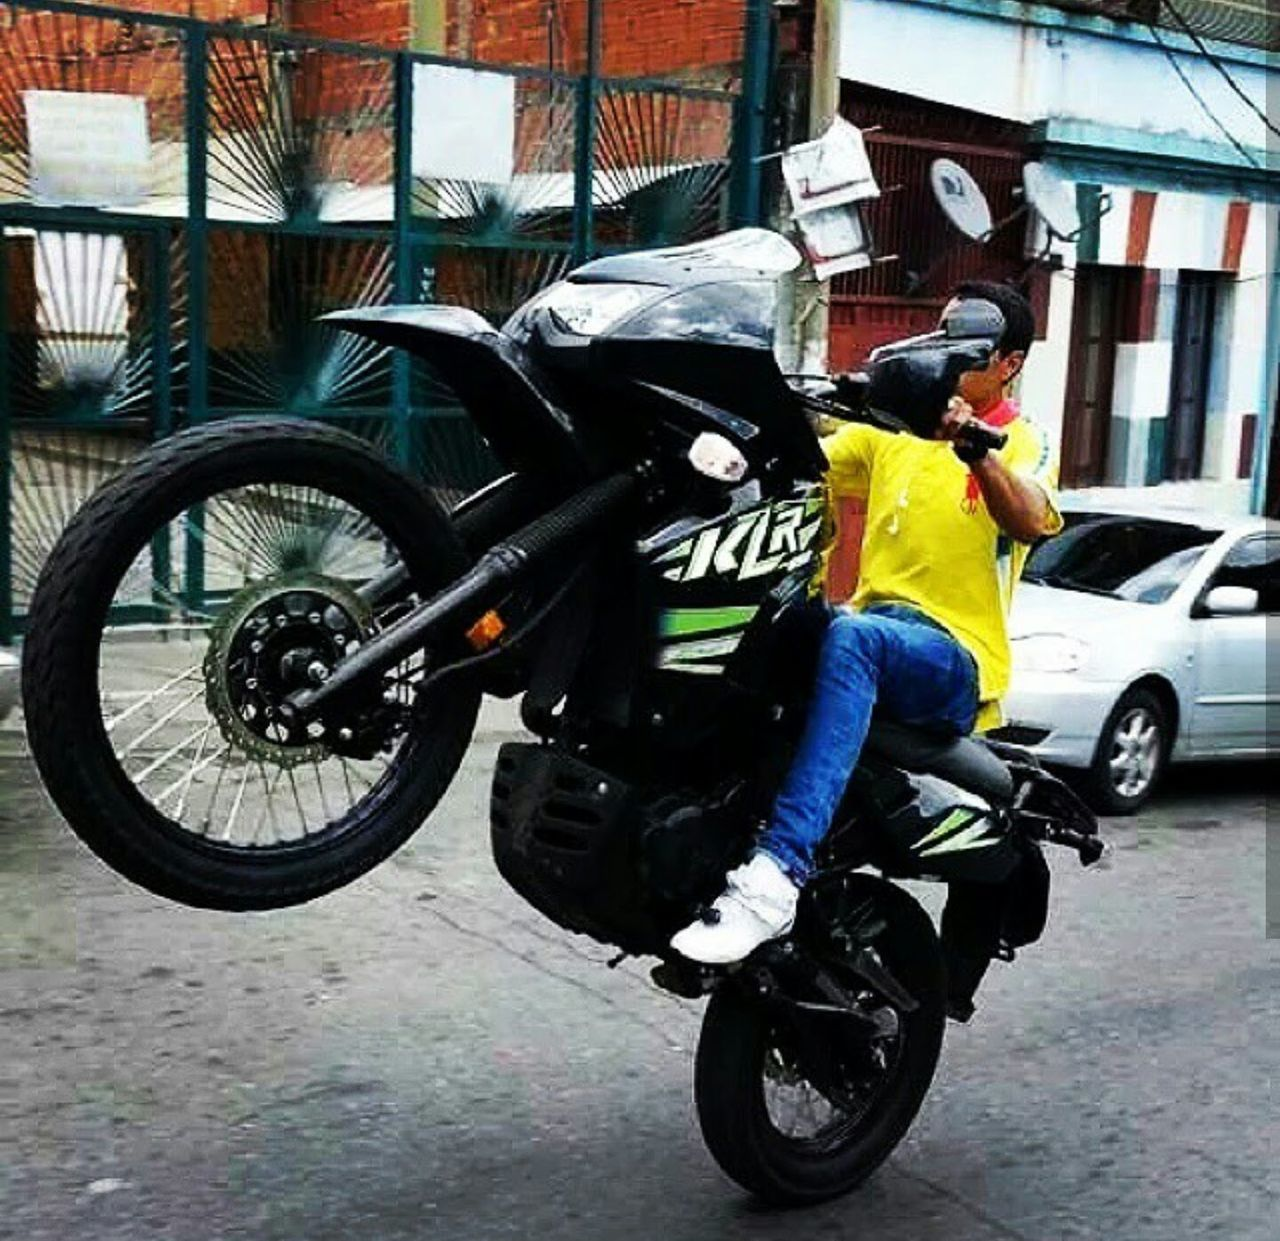 helmet, transportation, mode of transport, land vehicle, real people, one person, full length, motorcycle, headwear, men, crash helmet, riding, day, built structure, outdoors, sports helmet, one man only, architecture, building exterior, biker, only men, adult, people